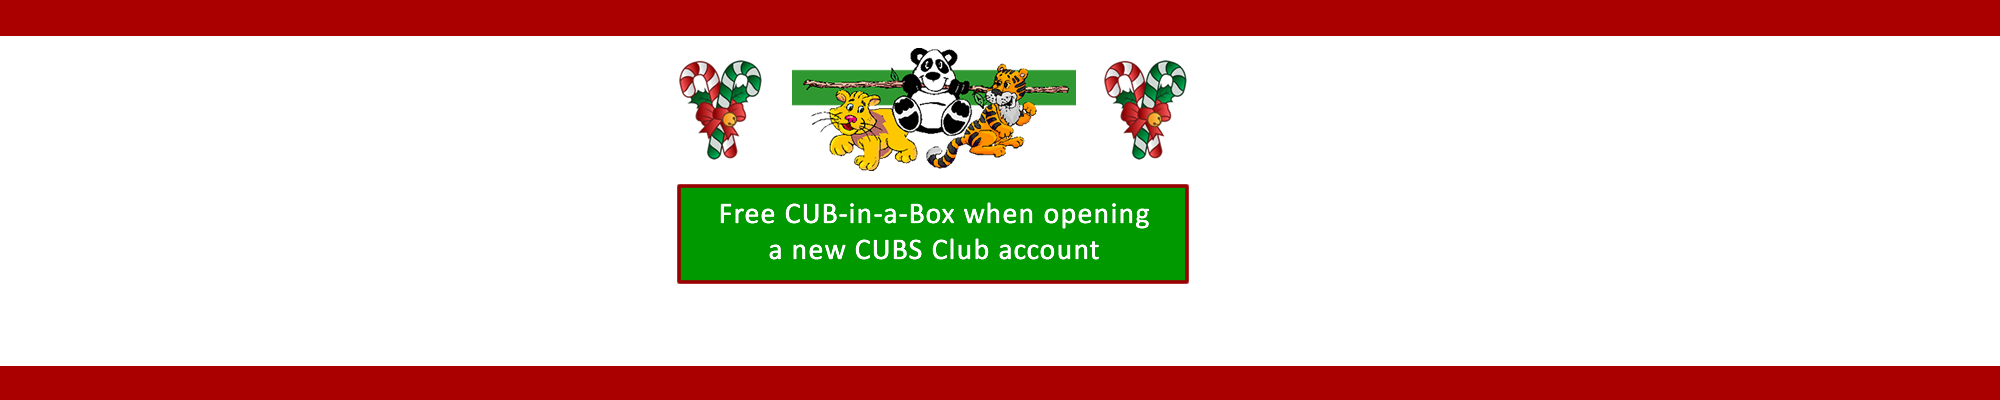 Cubs Club Christmas